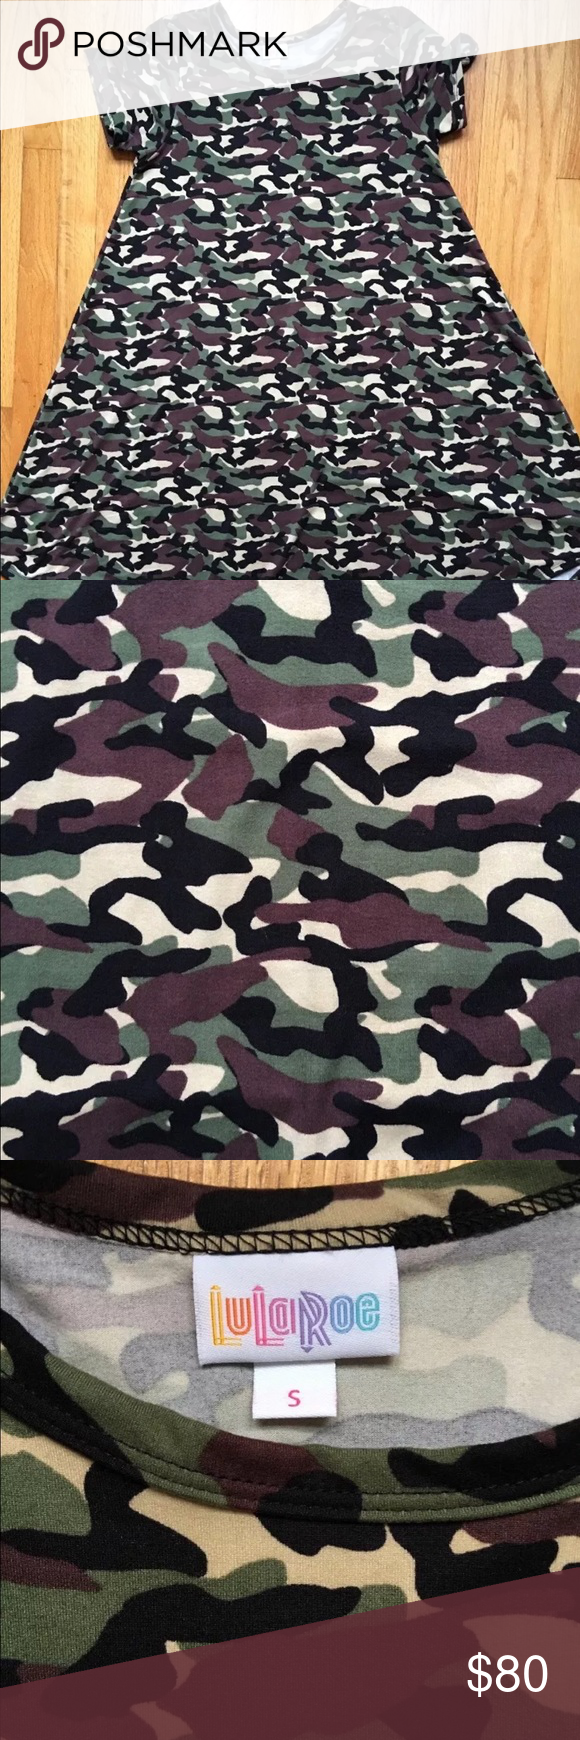 ab4ed2c5d1162 ***UNICORN*** Lularoe Camouflage Carly S RARE NO POCKETS NWOT washed once  per LLR standards never worn. Pet free smoke free home. LuLaRoe Dresses